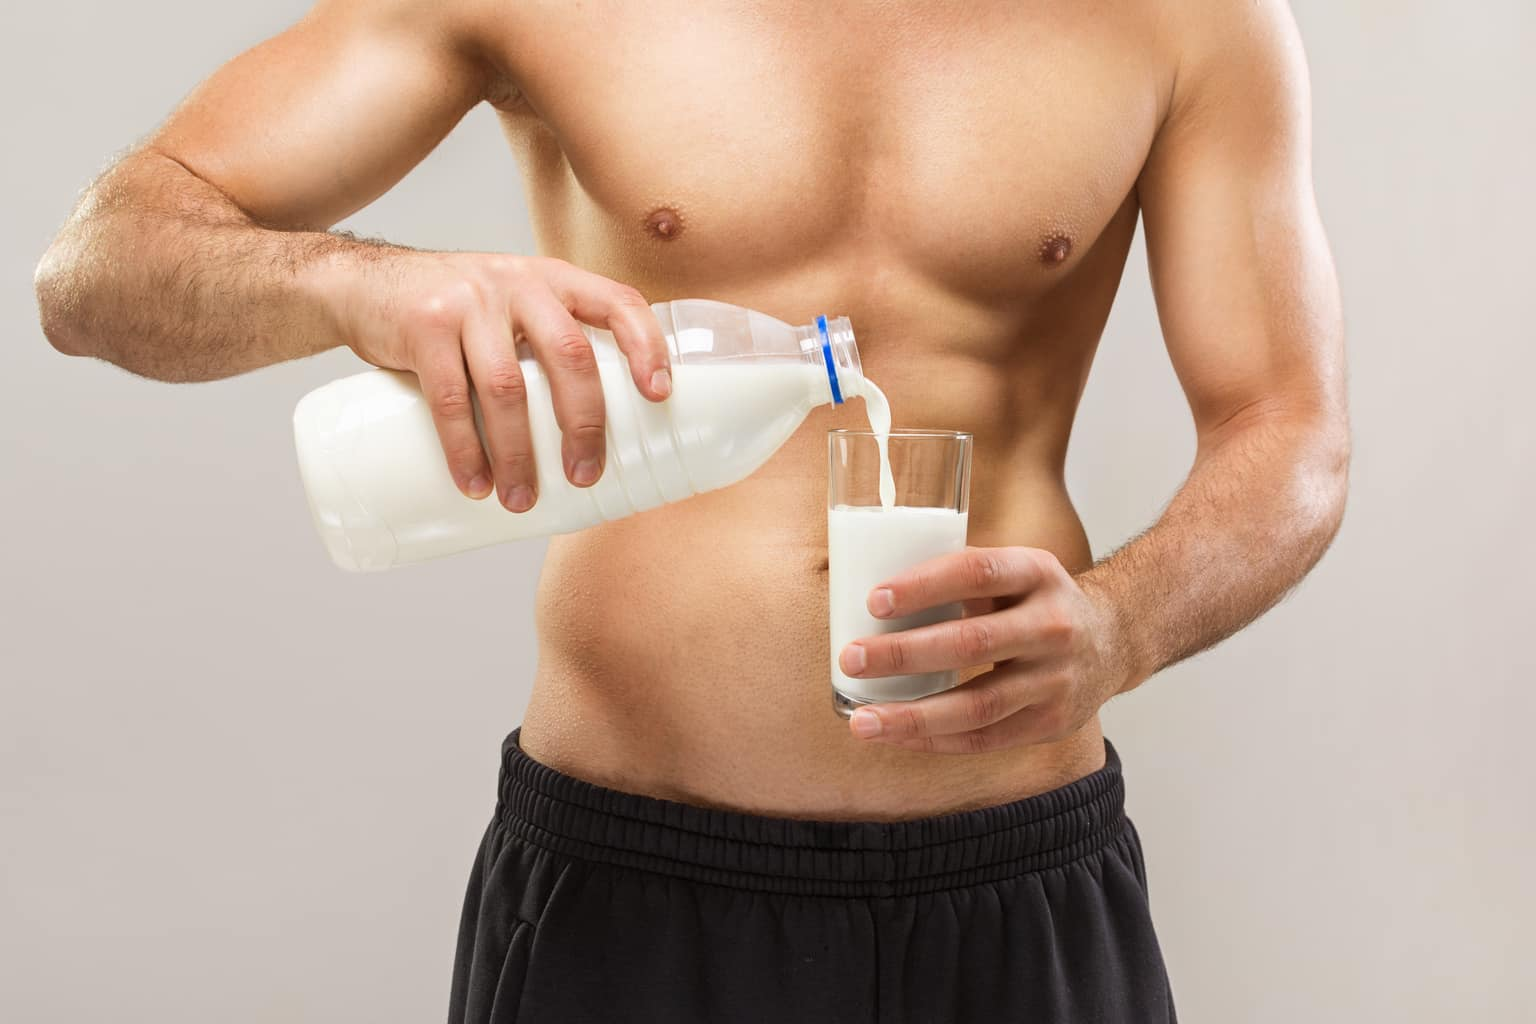 Genetically-modified milk can create serious inflammation